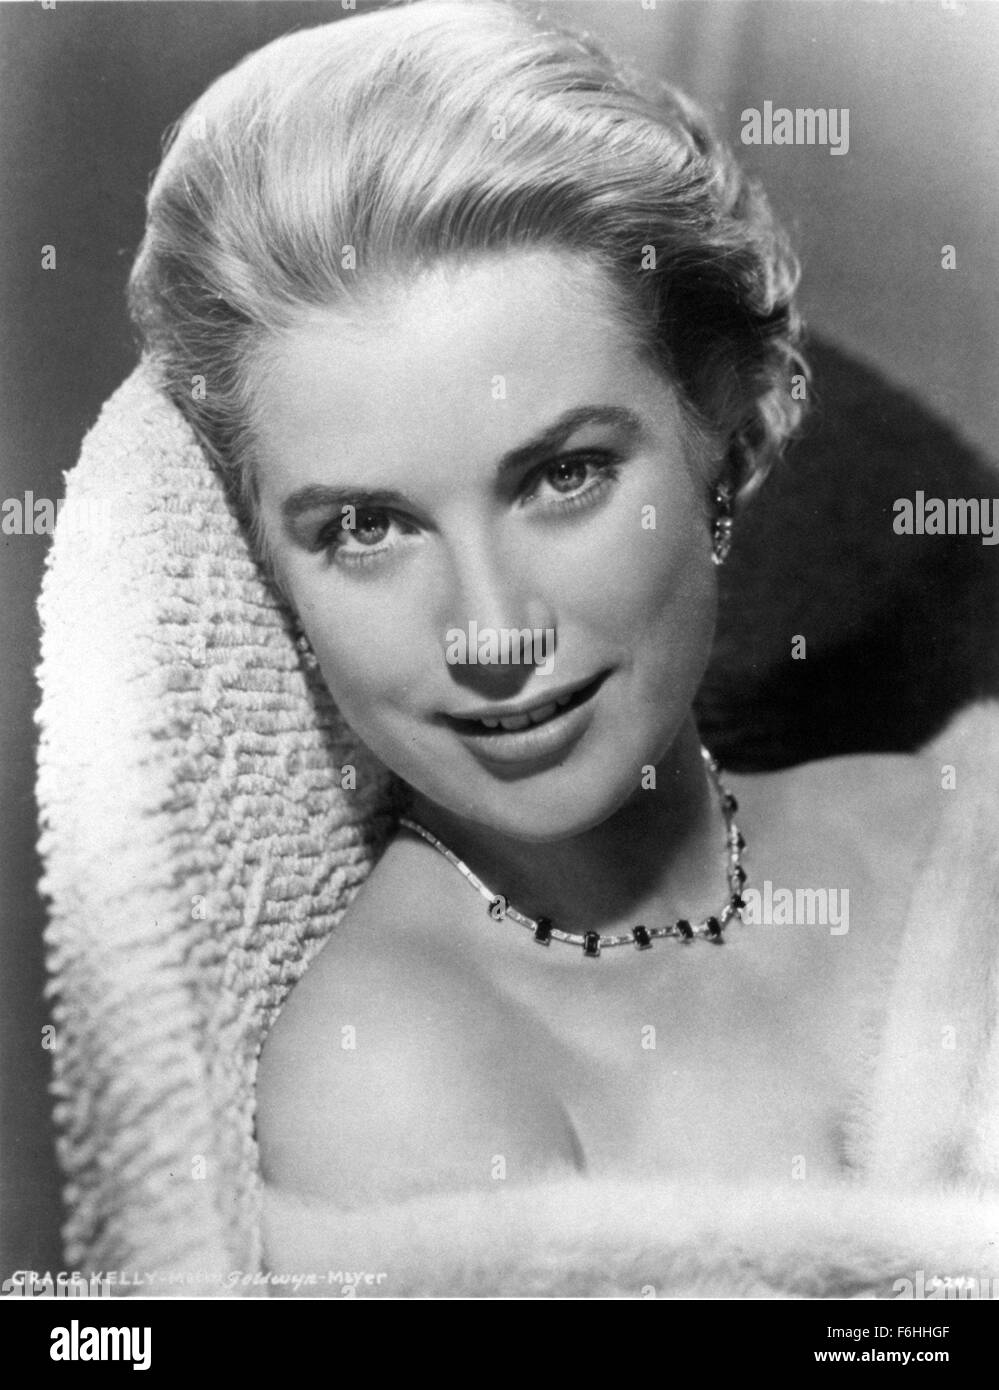 1956, Film Title: HIGH SOCIETY, Director: CHARLES WALTERS, Studio: MGM, Pictured: GRACE KELLY. (Credit Image: SNAP) - Stock Image